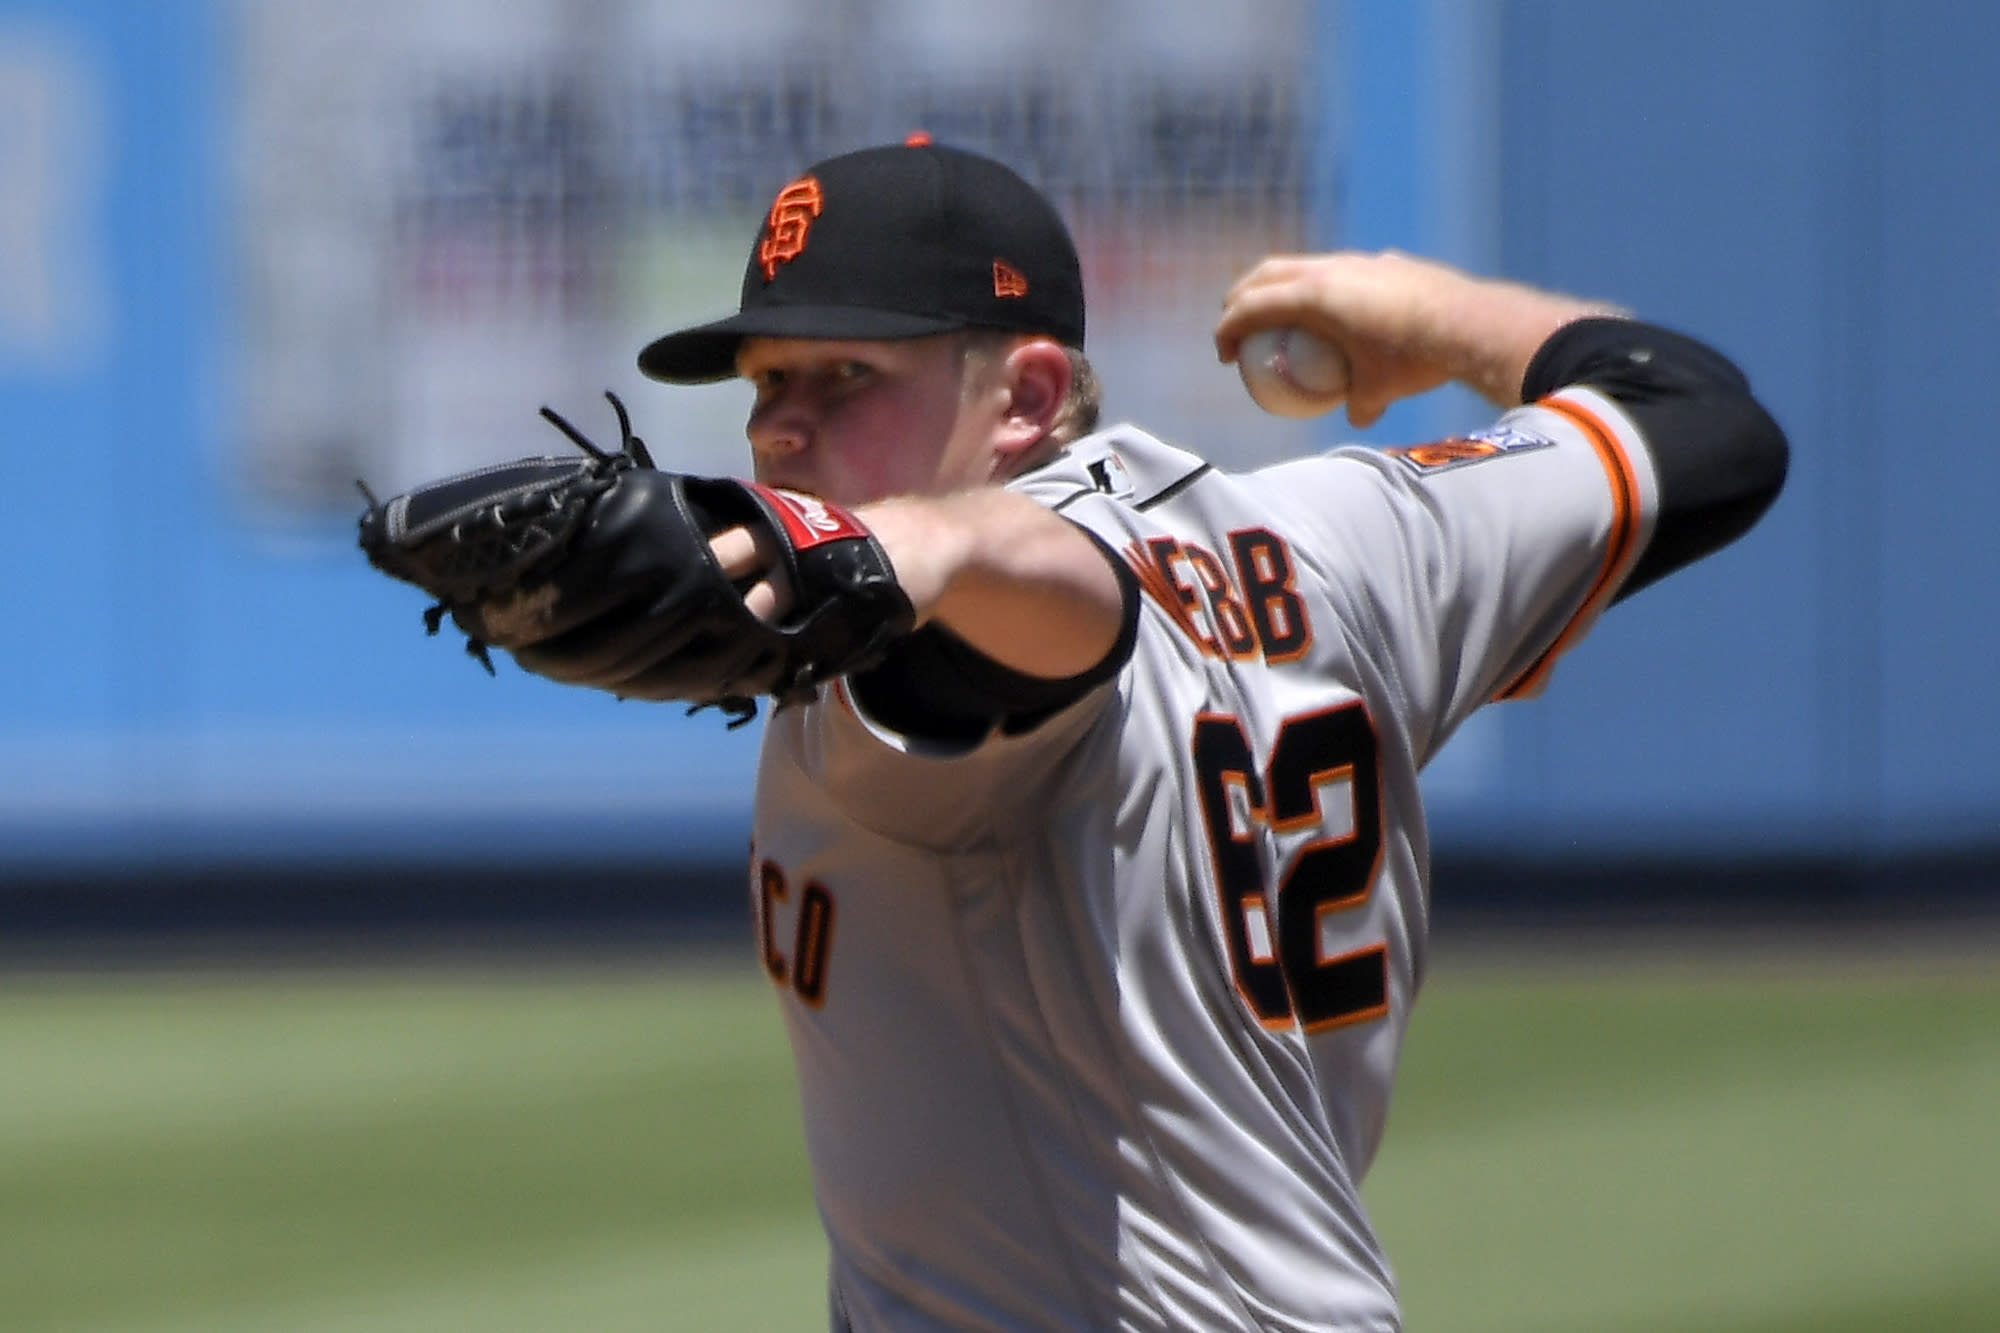 San Francisco Giants starting pitcher Logan Webb throws to the plate during the first inning of a baseball game against the Los Angeles Dodgers Saturday, July 25, 2020, in Los Angeles. (AP Photo/Mark J. Terrill)